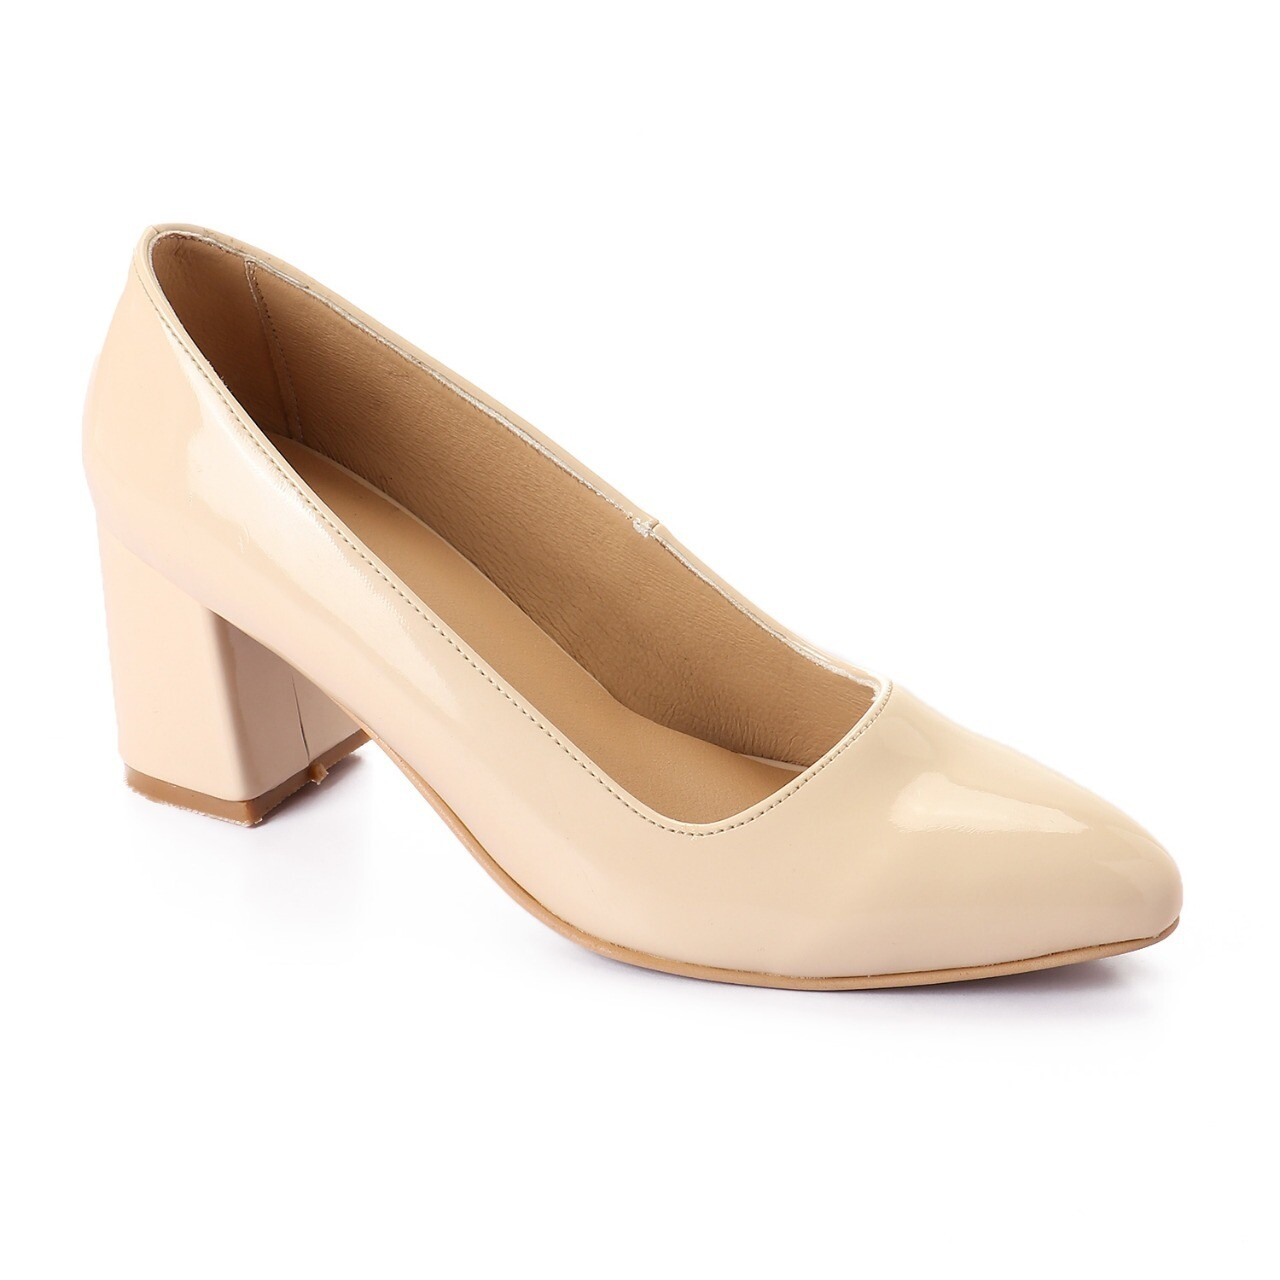 3391 Shoes - Beige Vern